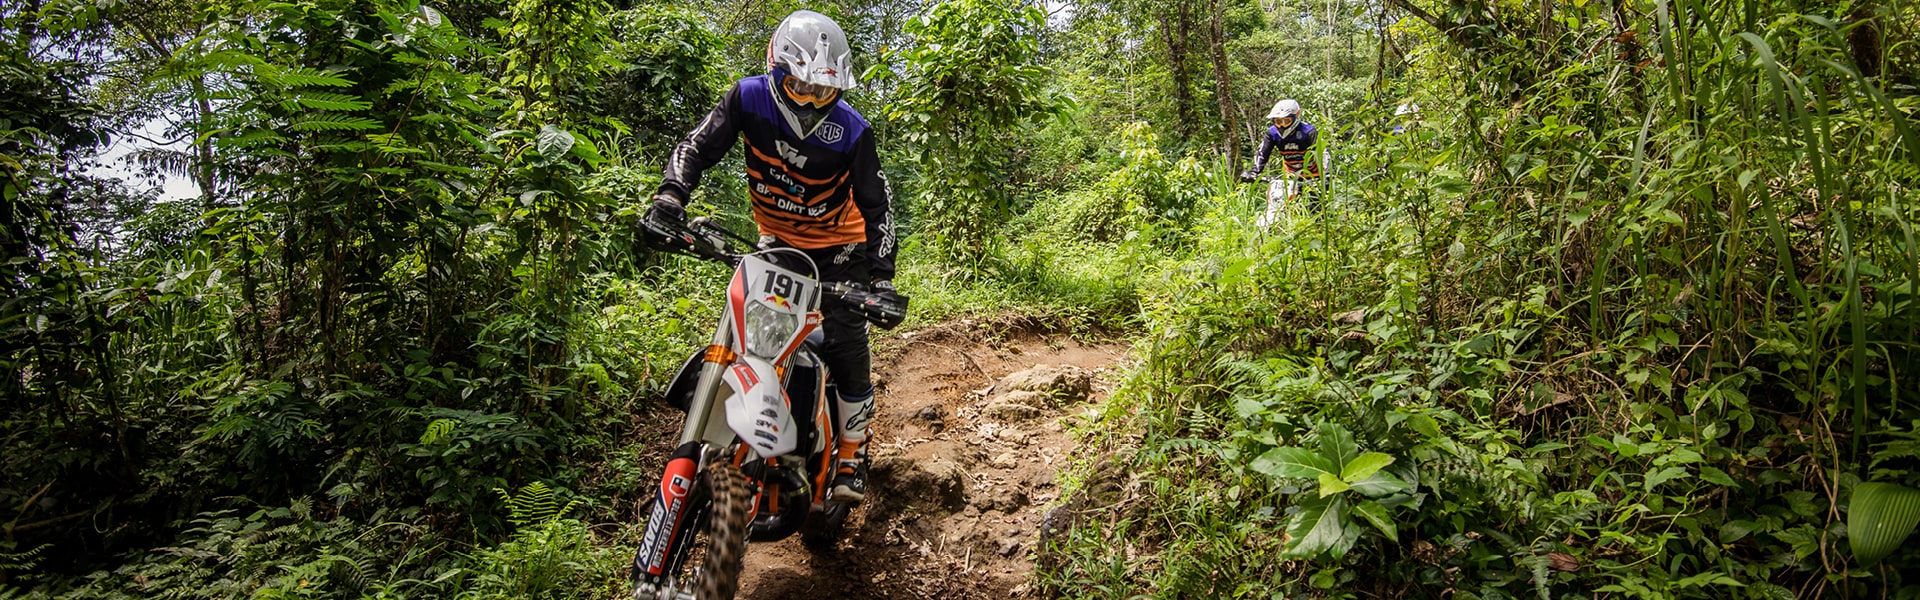 Bali_Dirt_Bikes_Home_Slider_Trails3